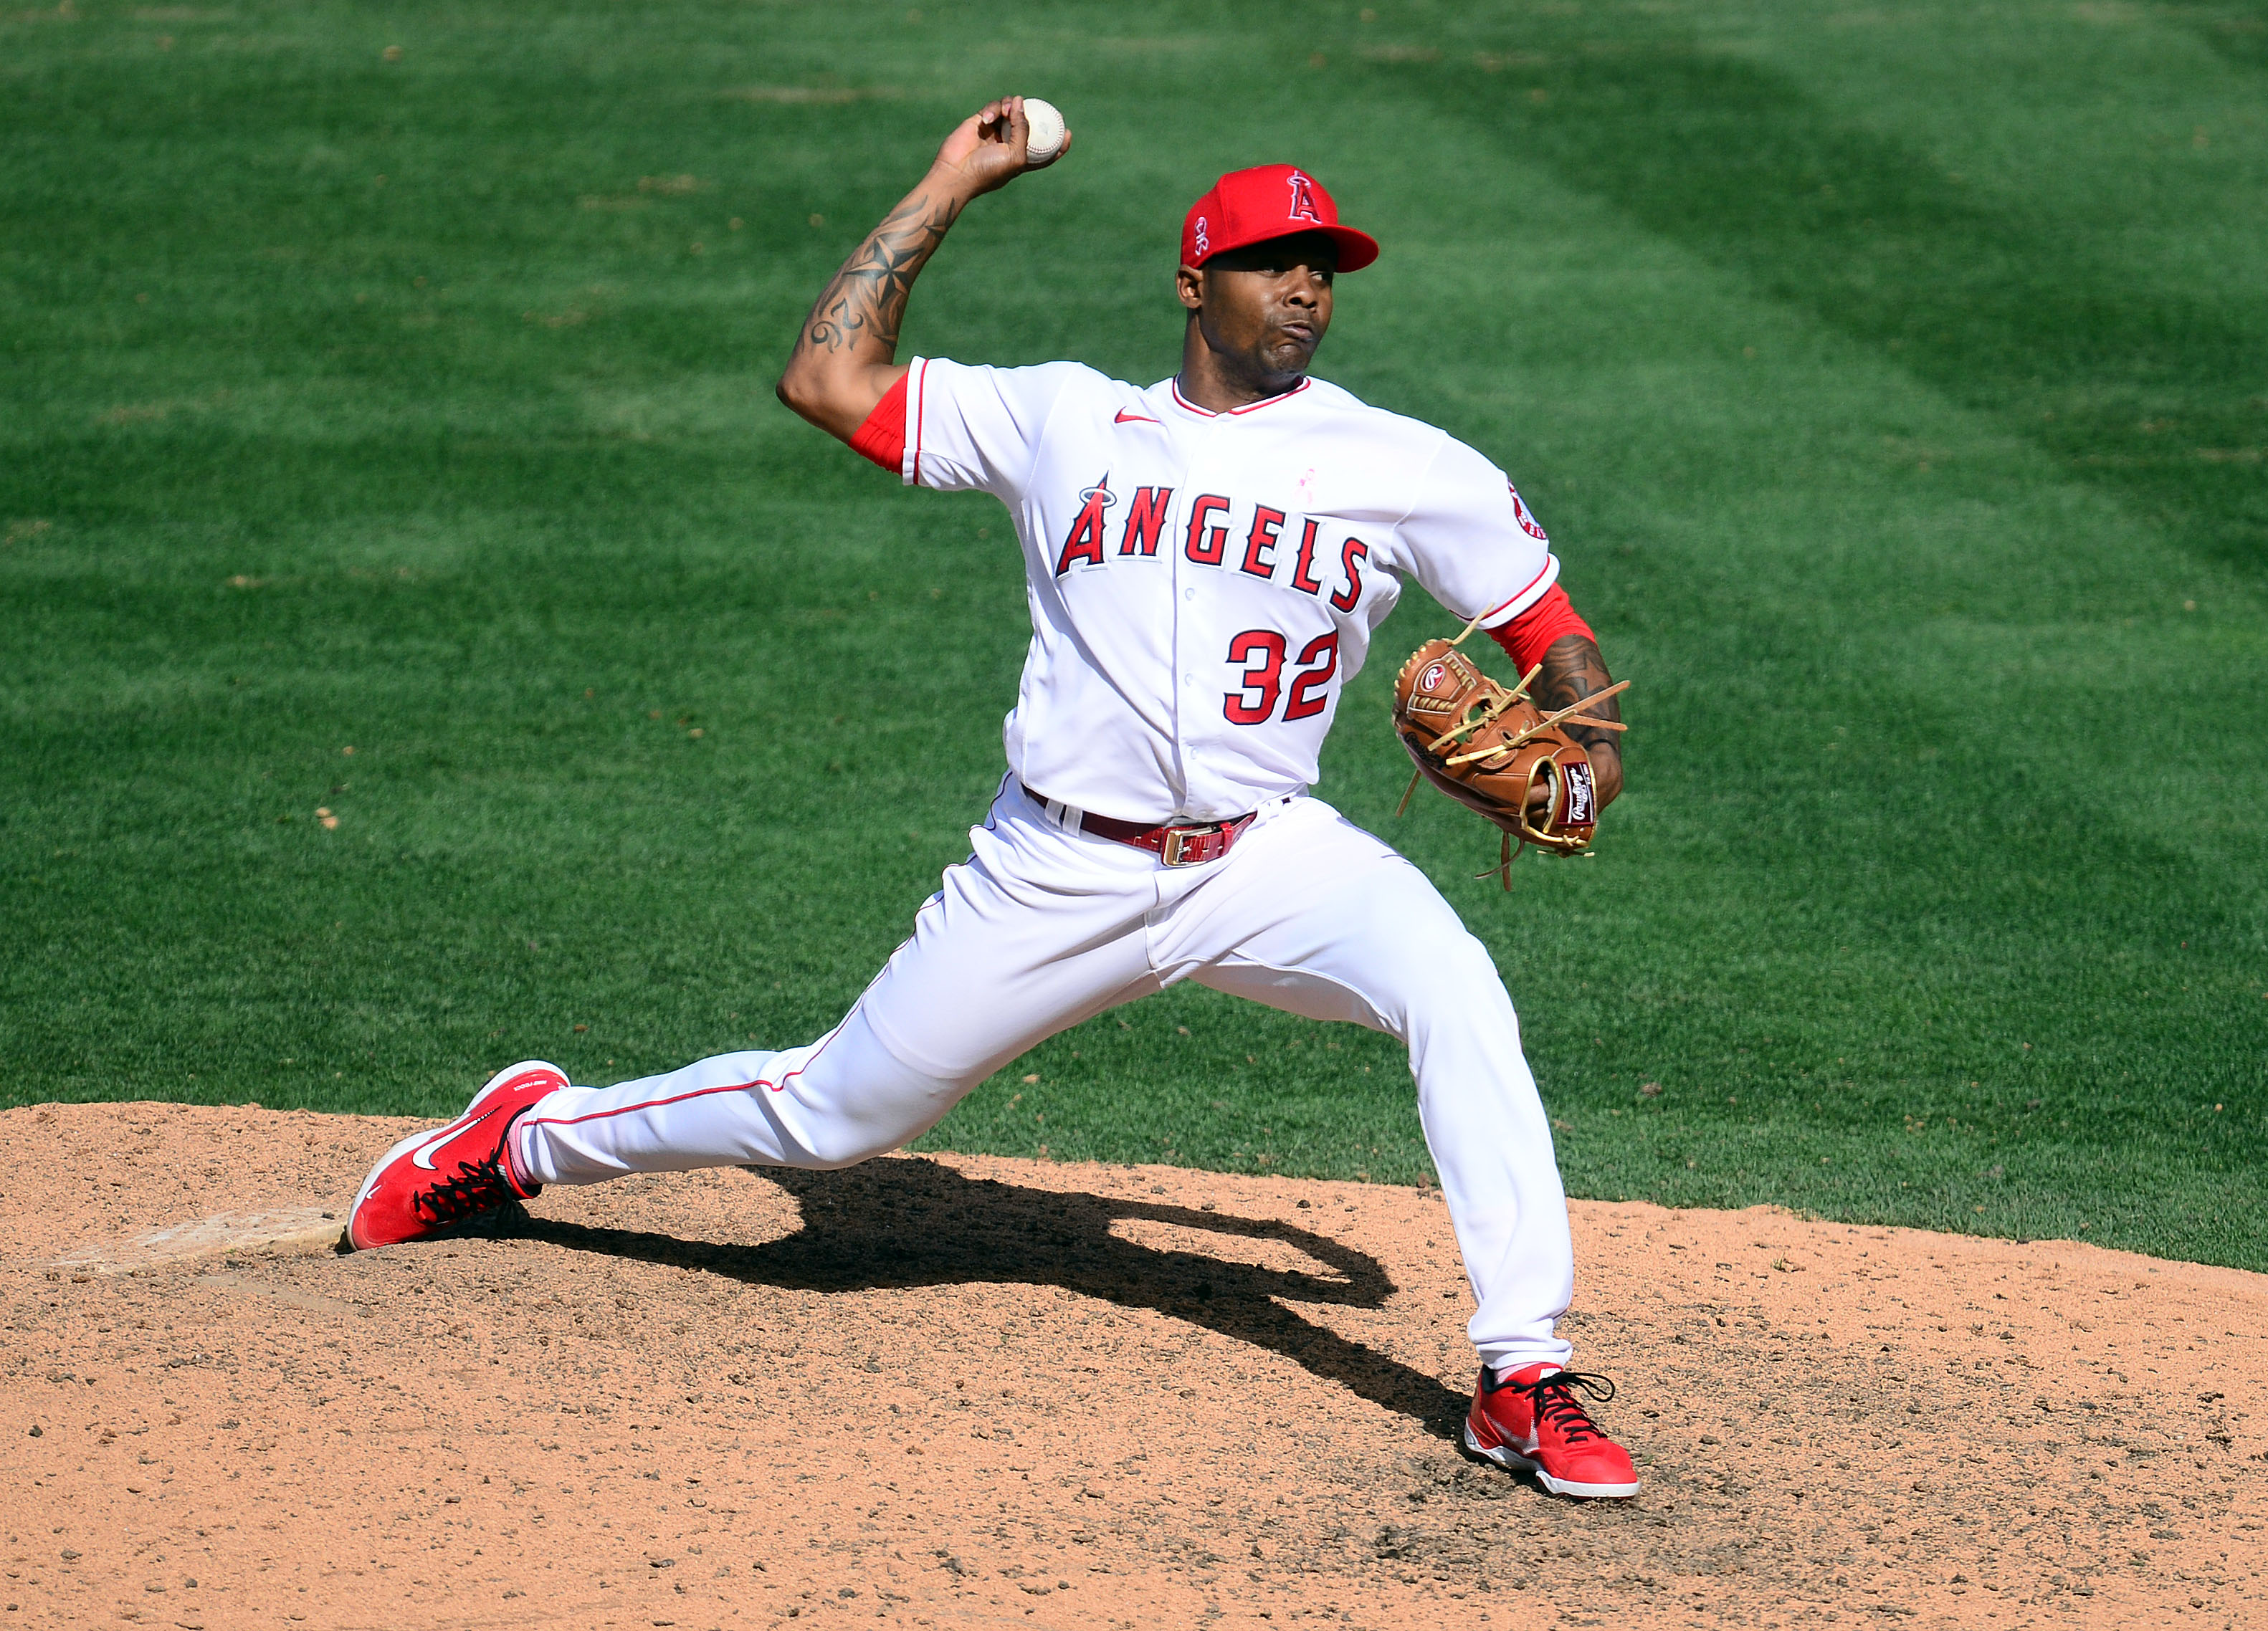 May 9, 2021; Anaheim, California, USA; Los Angeles Angels relief pitcher Raisel Iglesias (32) throws against the Los Angeles Dodgers during the ninth inning at Angel Stadium. Mandatory Credit: Gary A. Vasquez-USA TODAY Sports